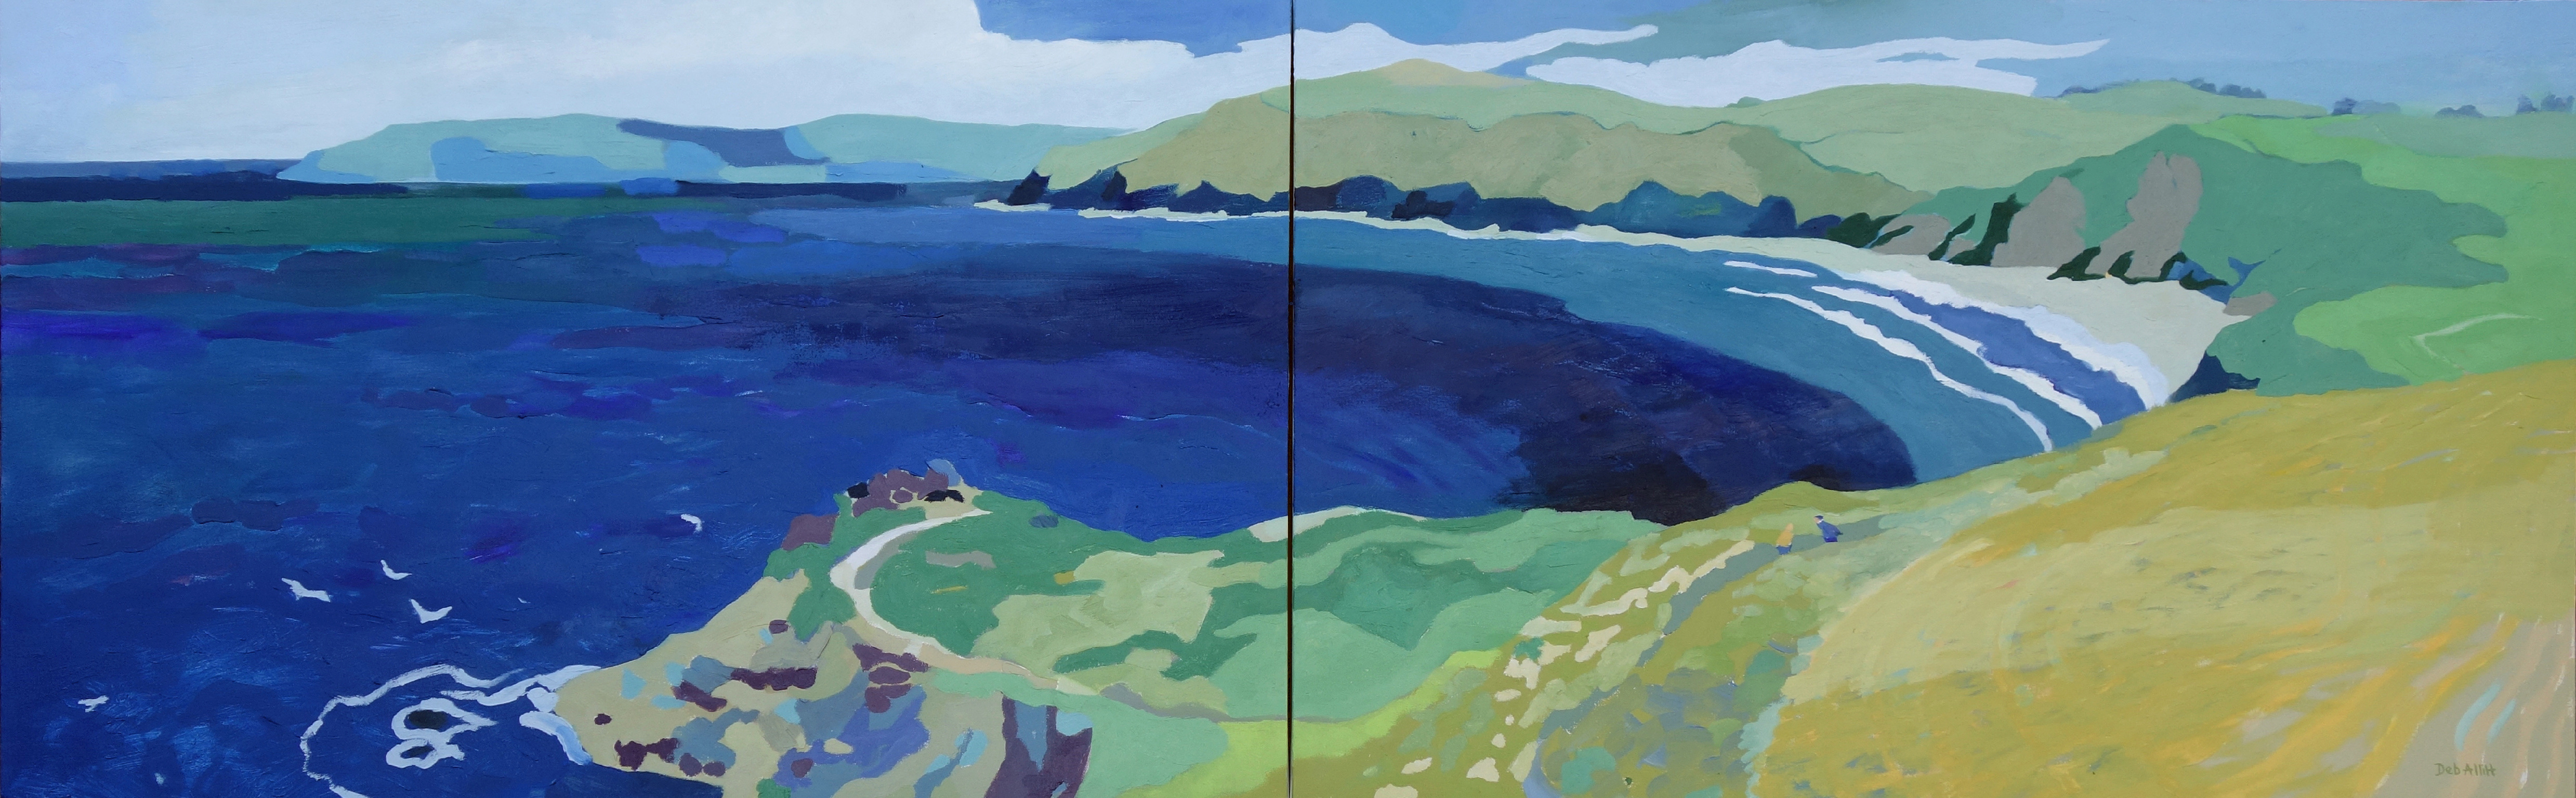 Deep Blue Sea, St Anthony Head, West Cornwall. Oil on canvas. 60 x 194 cm